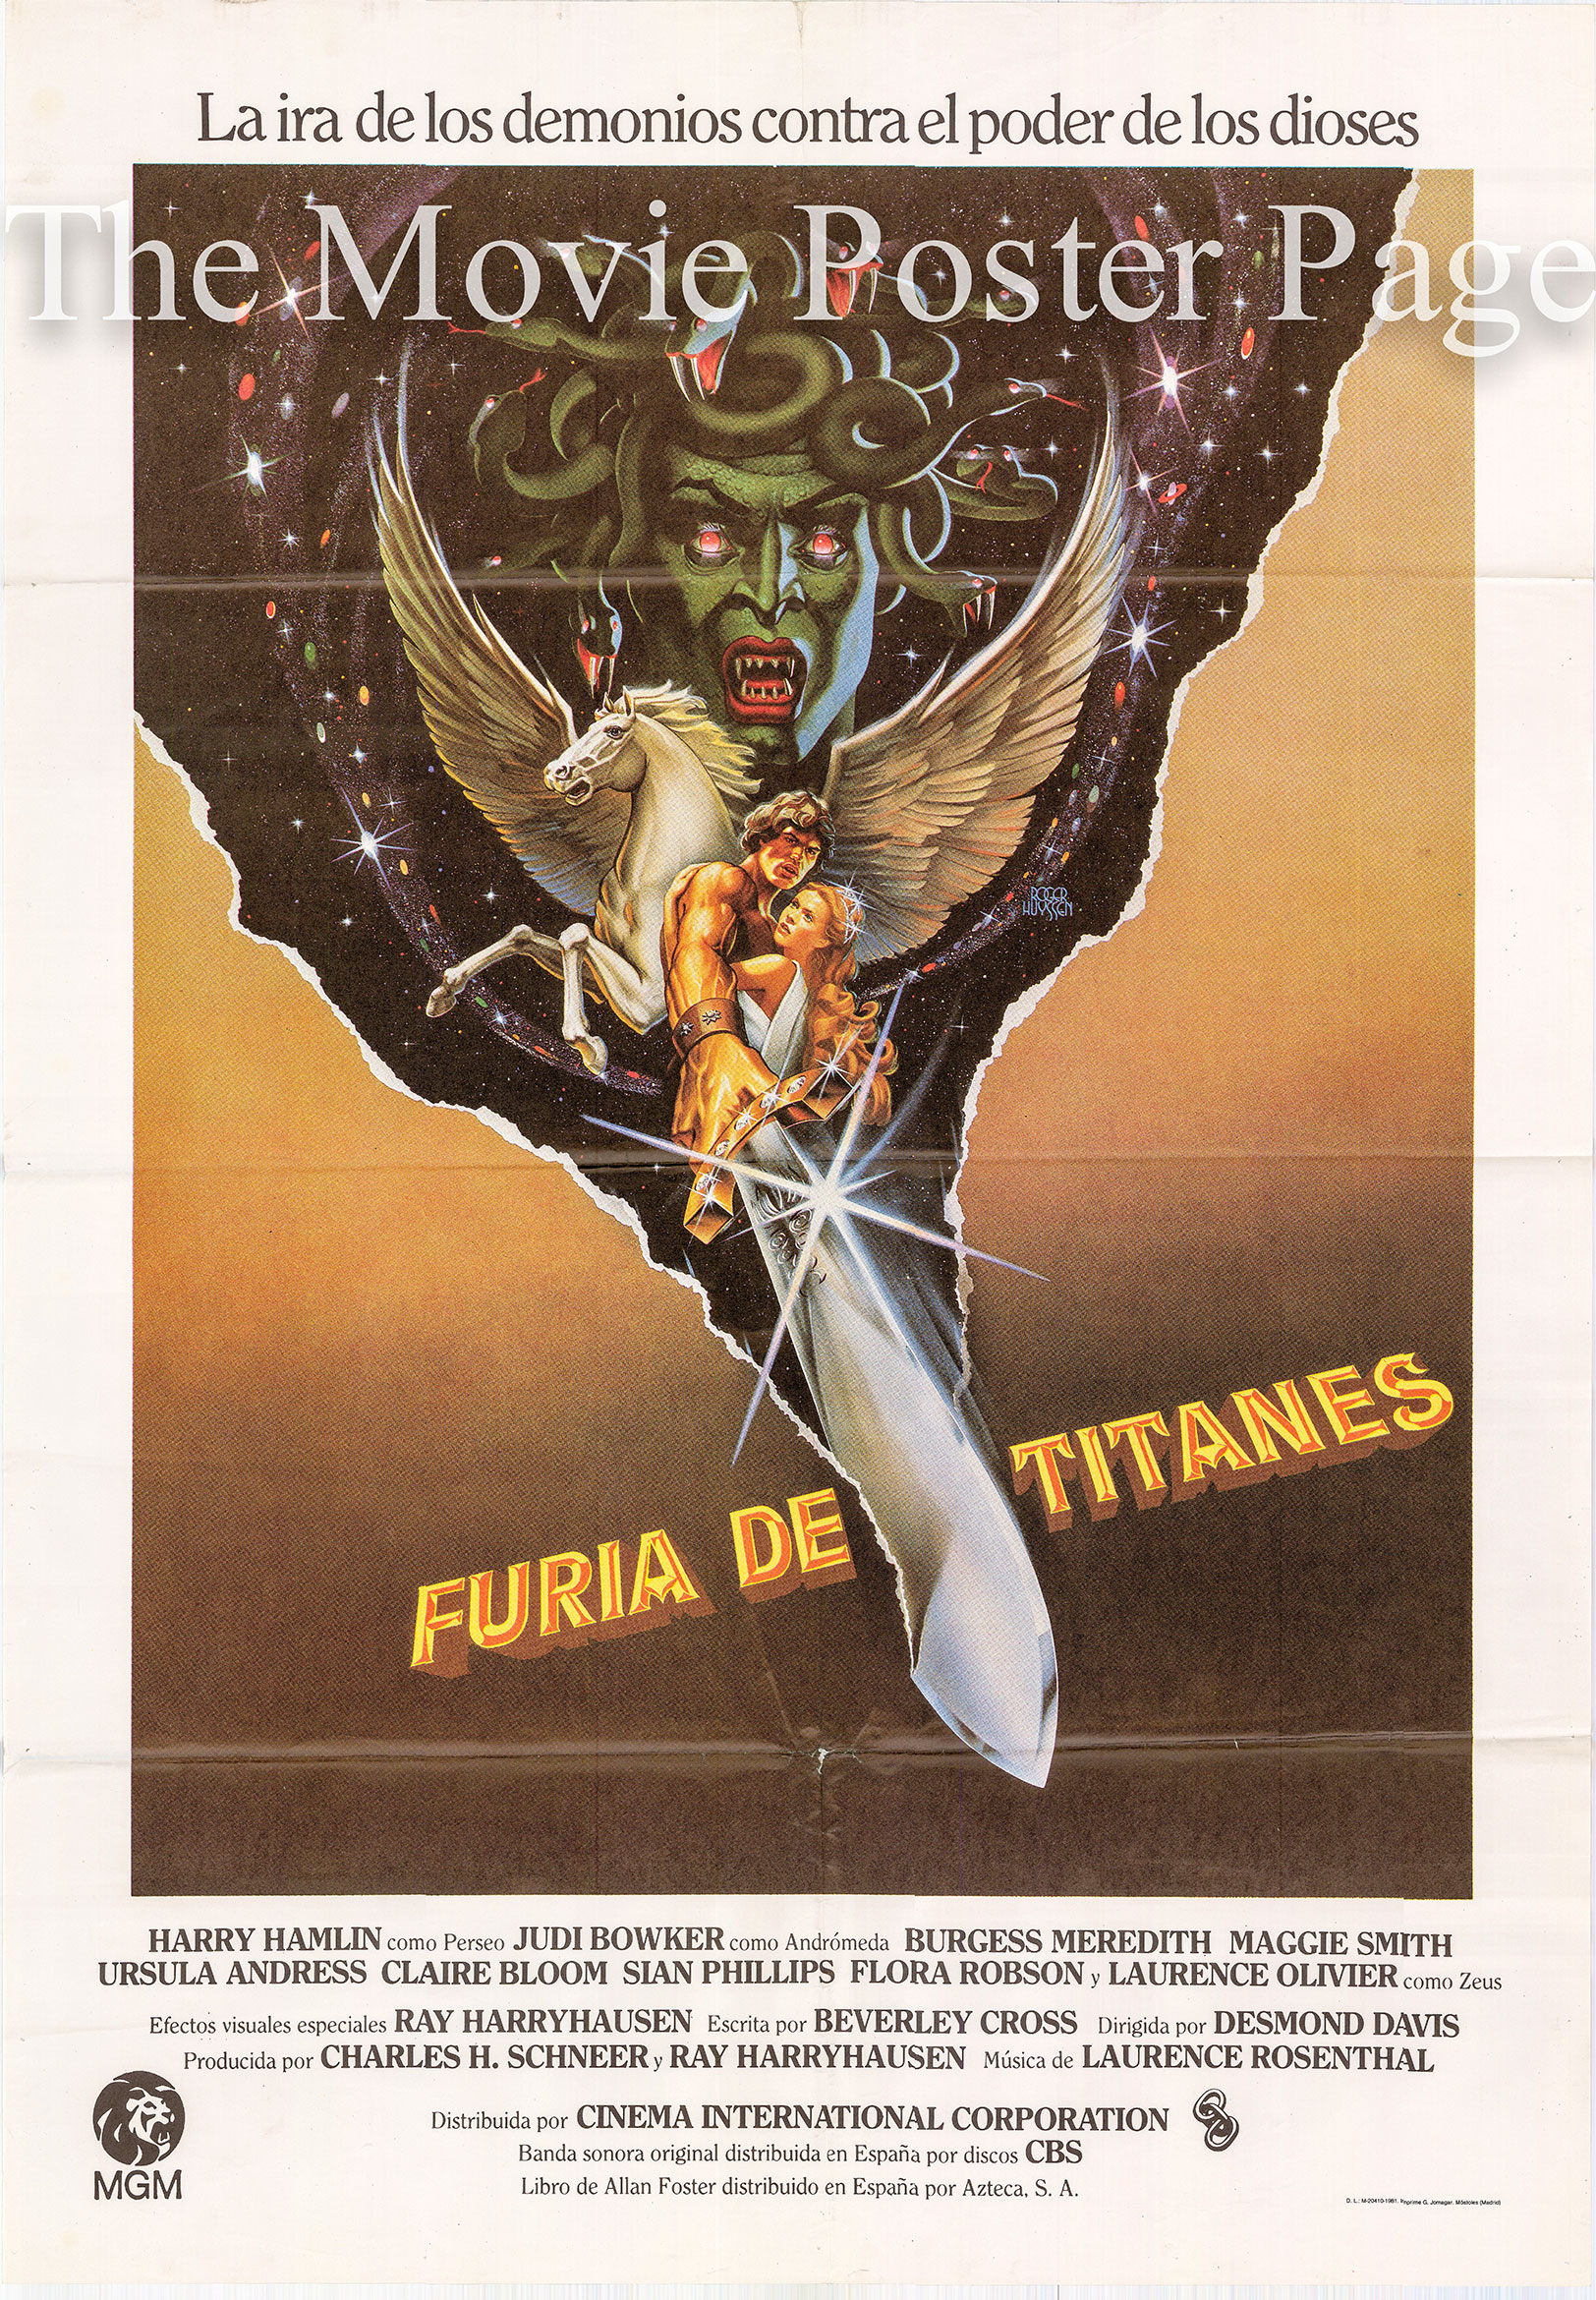 Pictured is a Spanish promotional poster for the 1981 Desmond Davis film Clash of the Titans starring Laurence Olivier.